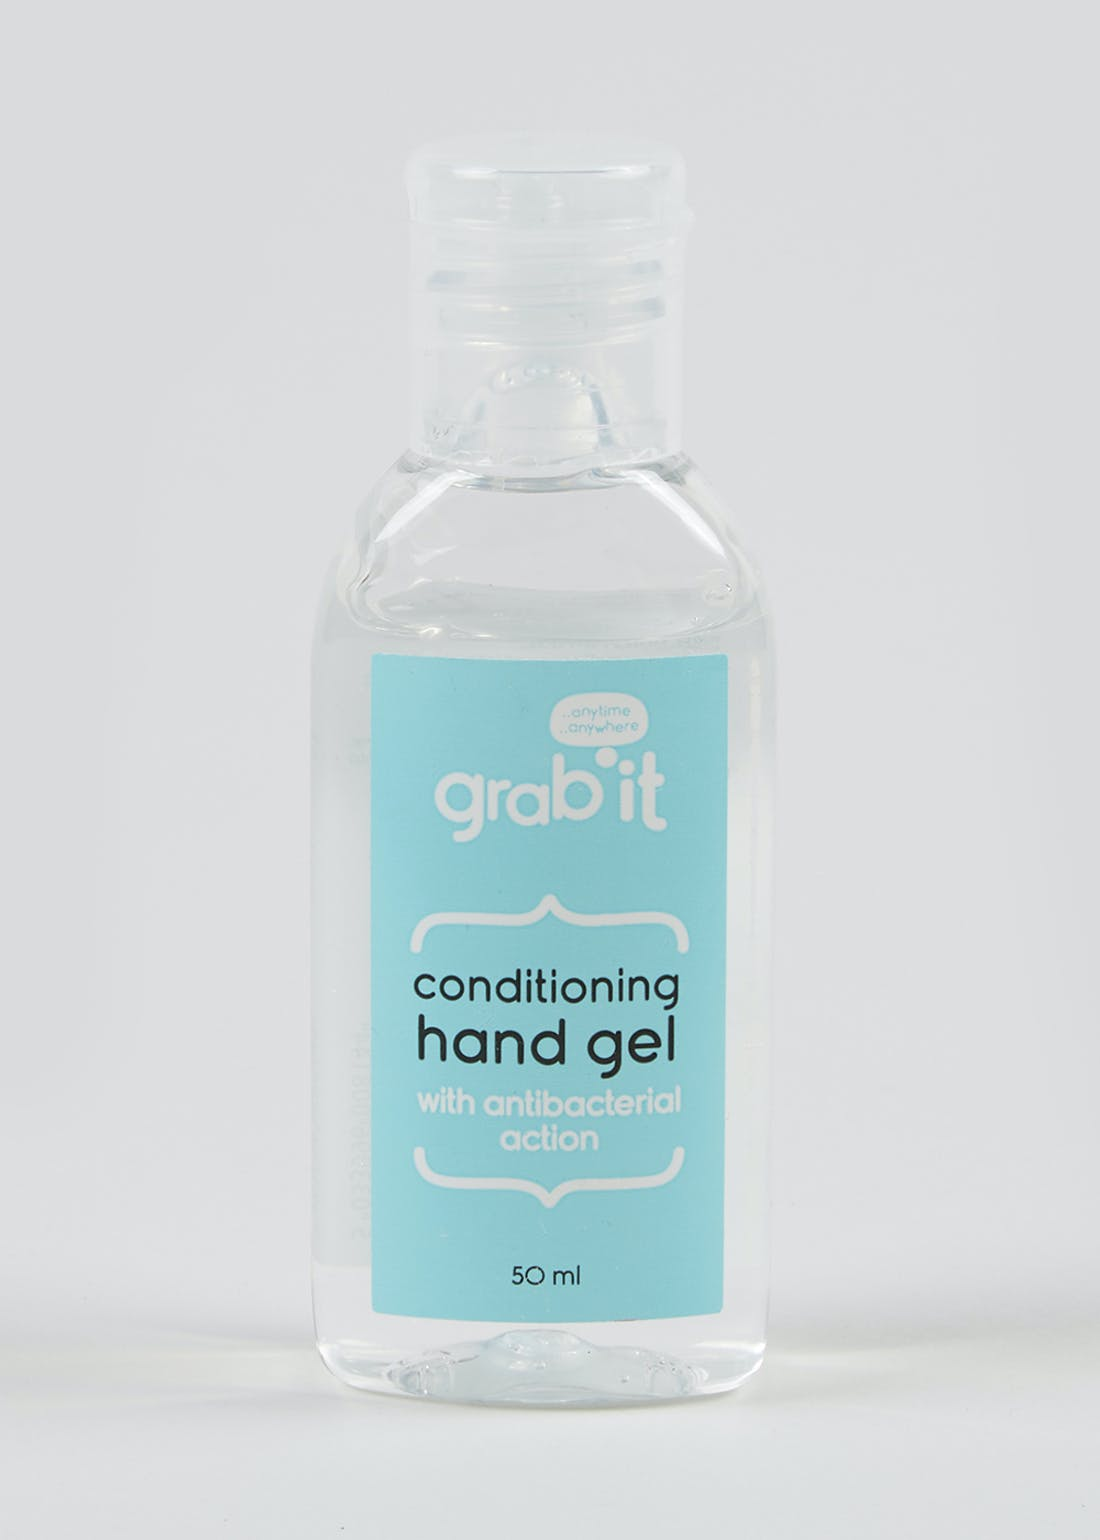 Conditioning Antibacterial Hand Gel